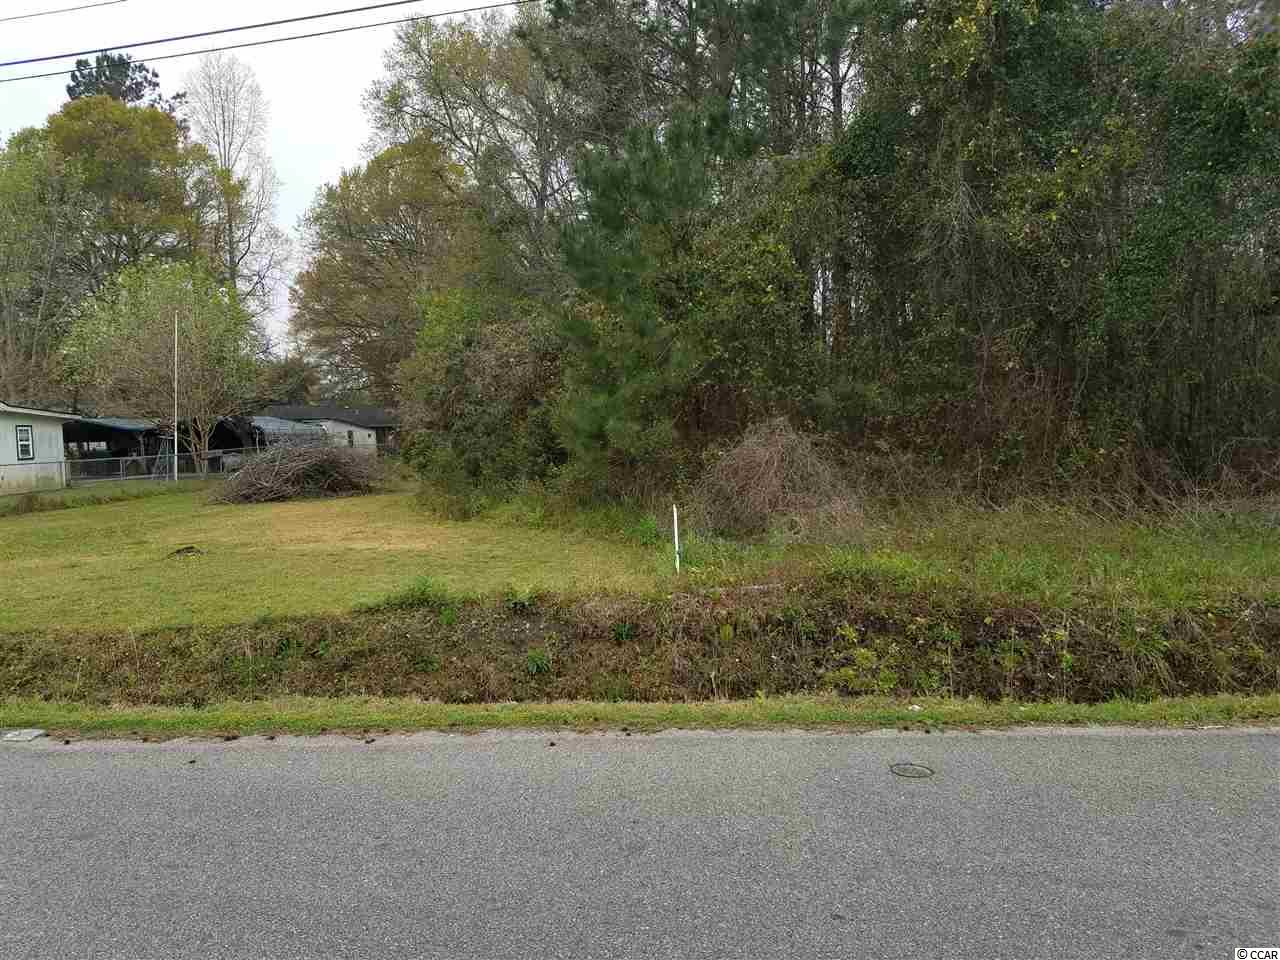 A residential lot in McDonald area of Georgetown. 5 minutes from the Historic District of Georgetown. Shopping and dining on the water front. Has 80 ft of paved road frontage. Measurements are approximate and not guaranteed. Buyer is responsible for verification.